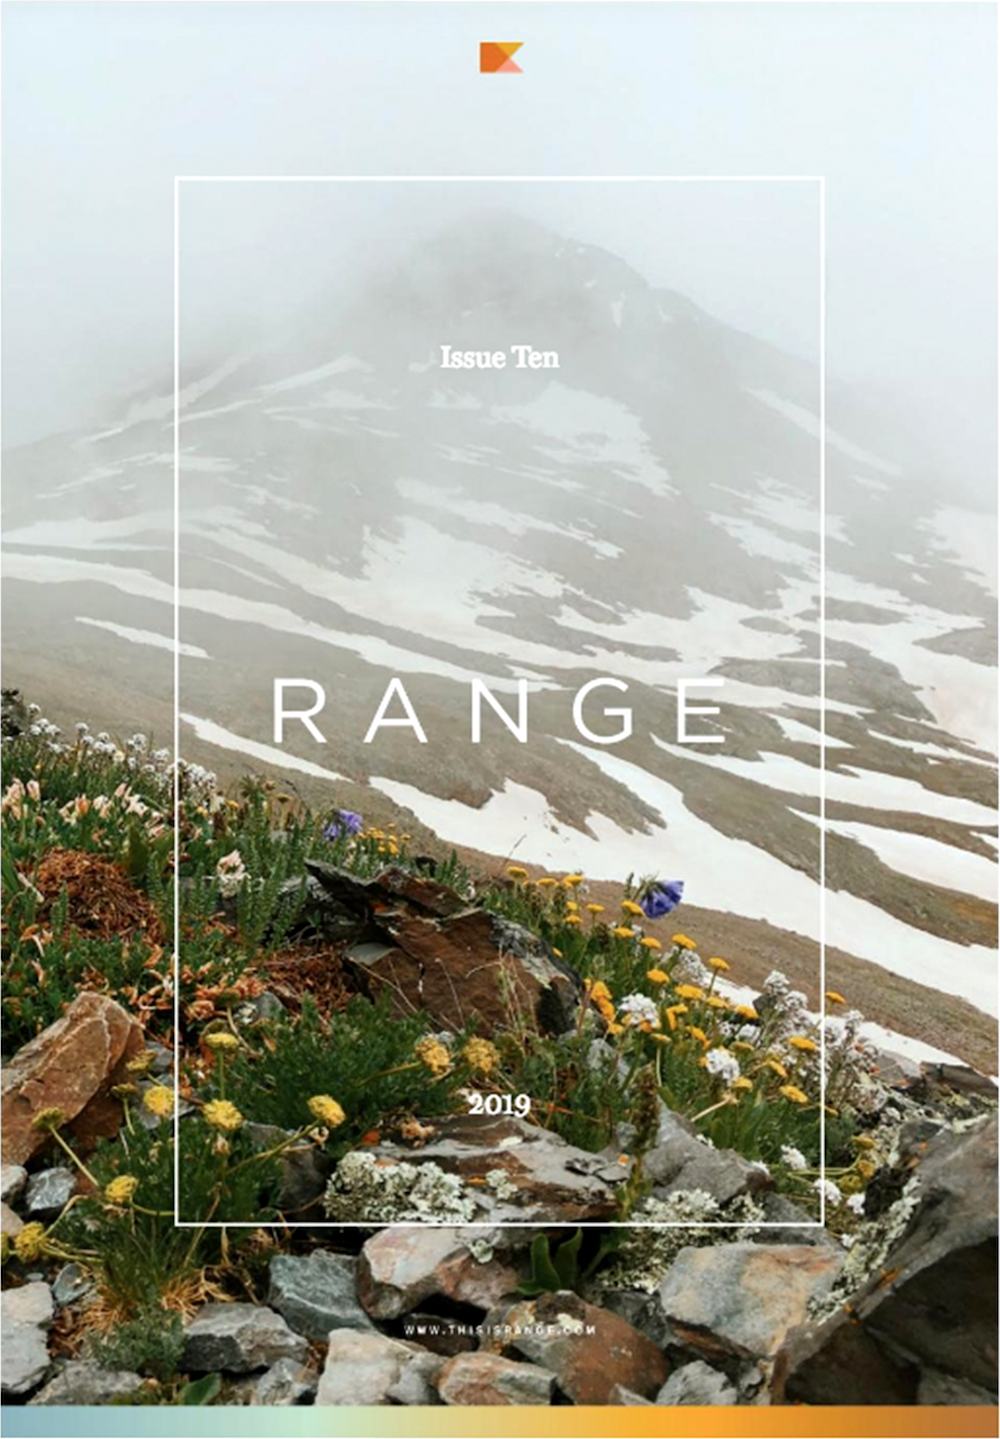 Range Magazine Issue 10 cover